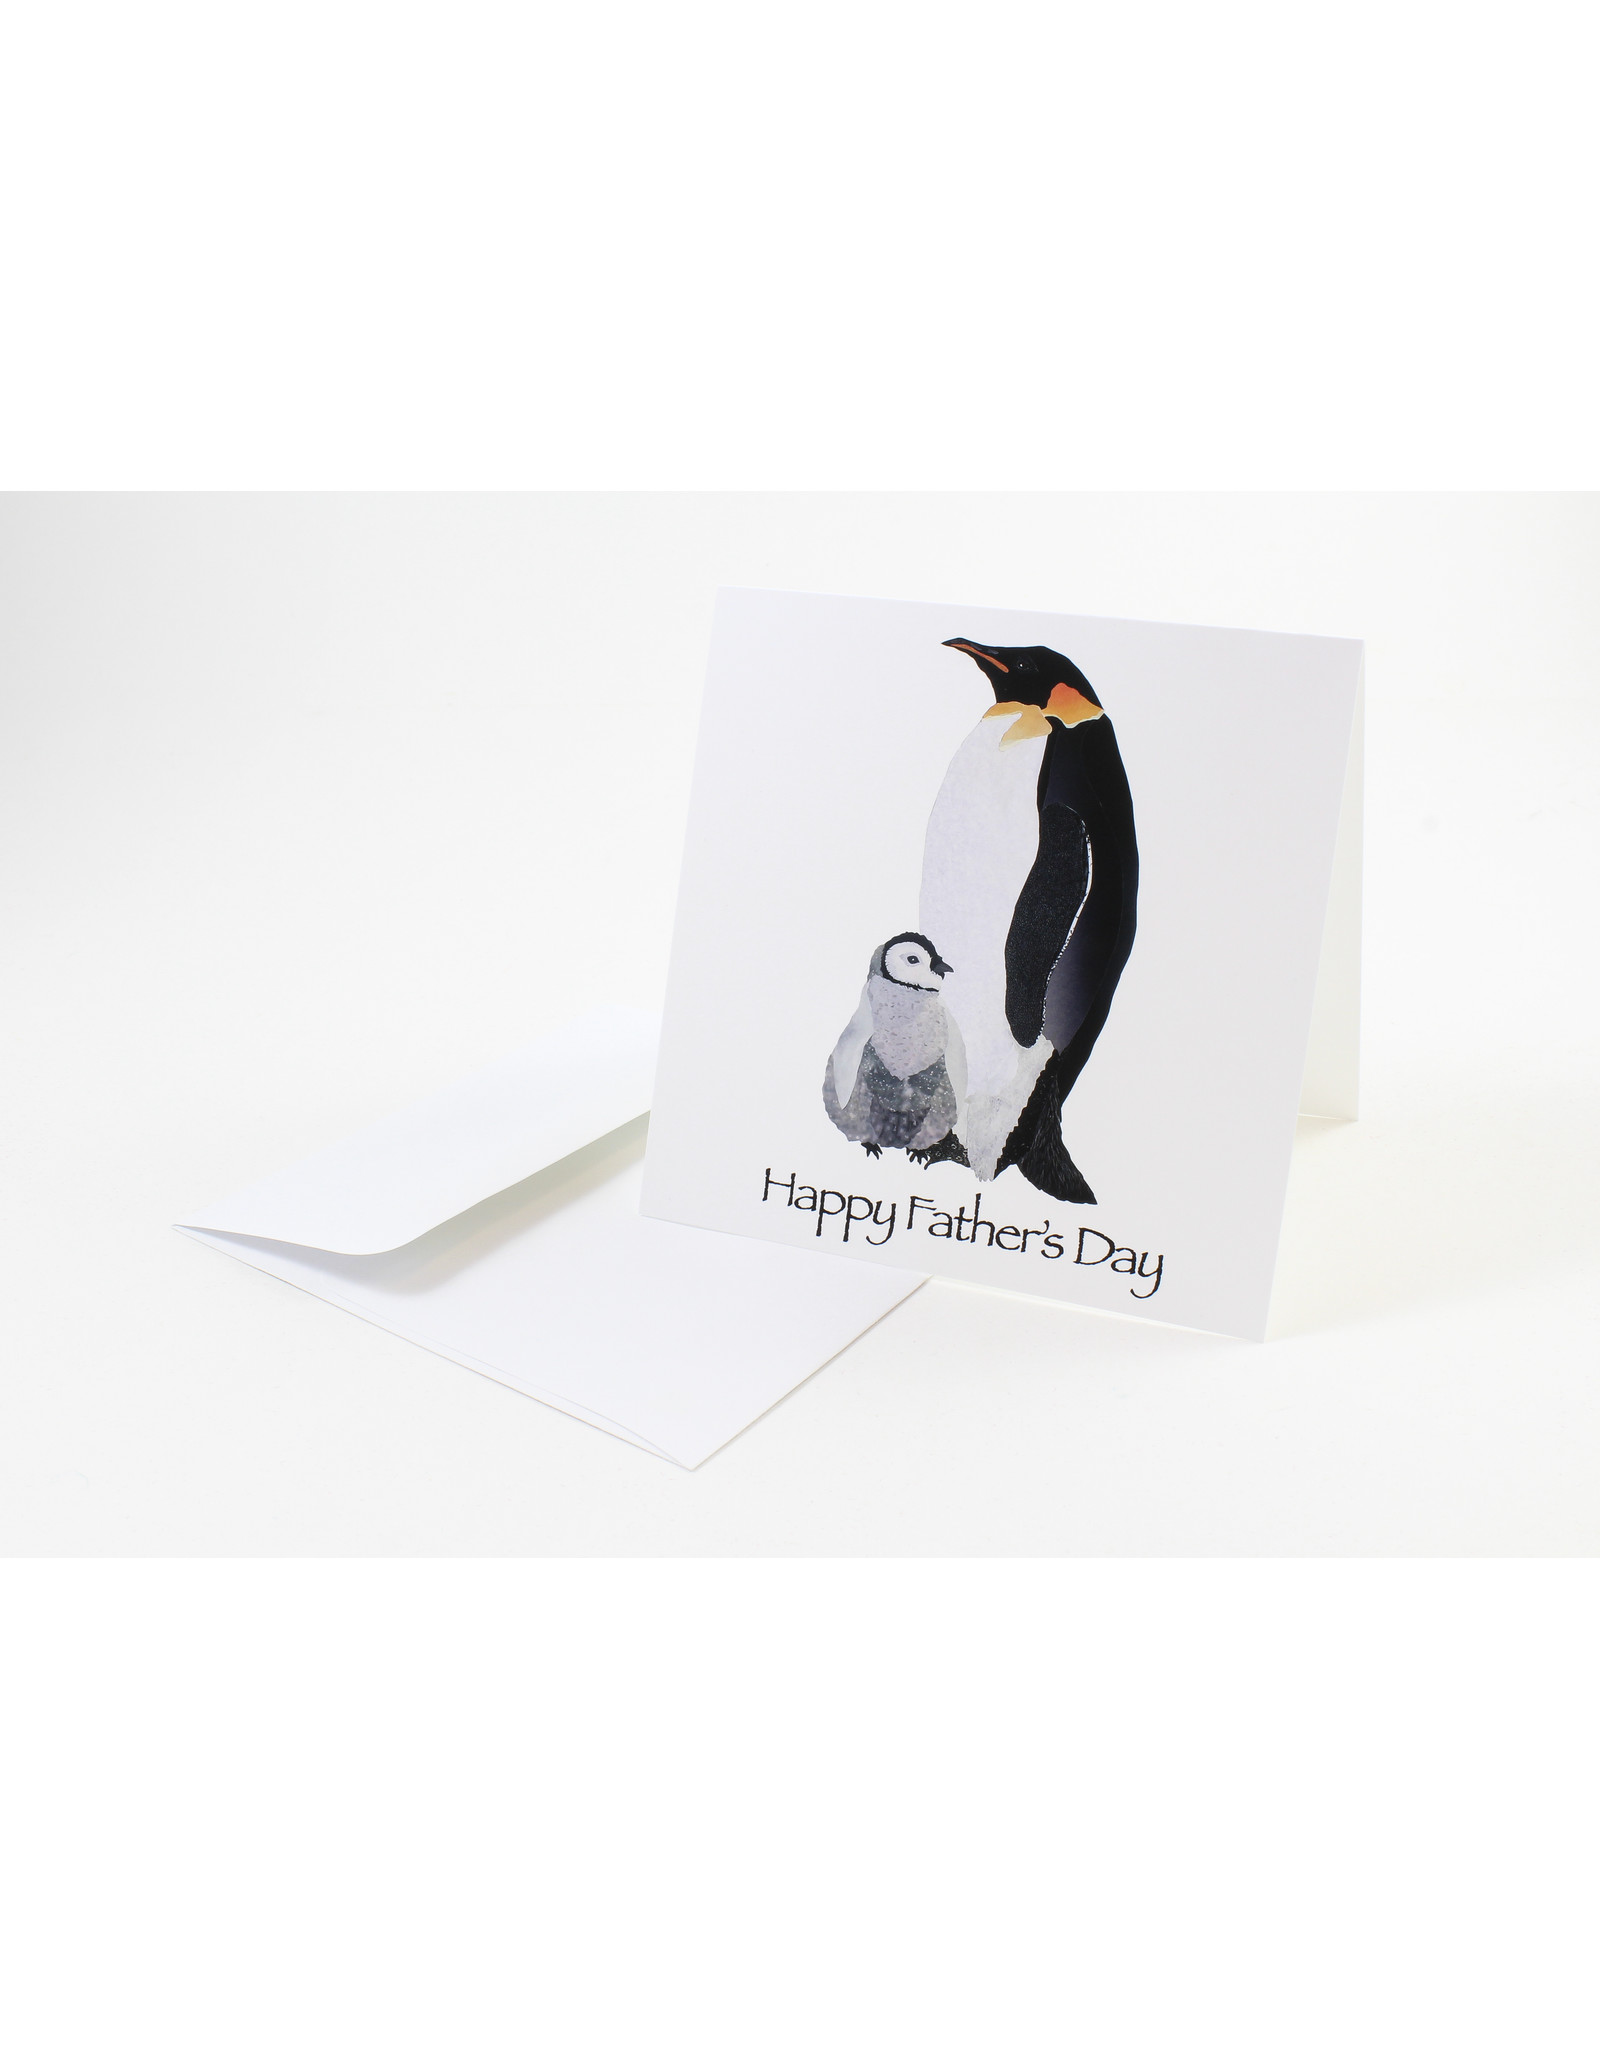 Merrideth MacDonald Father's Day Cards by Hunky Dunky Dory Paper Art